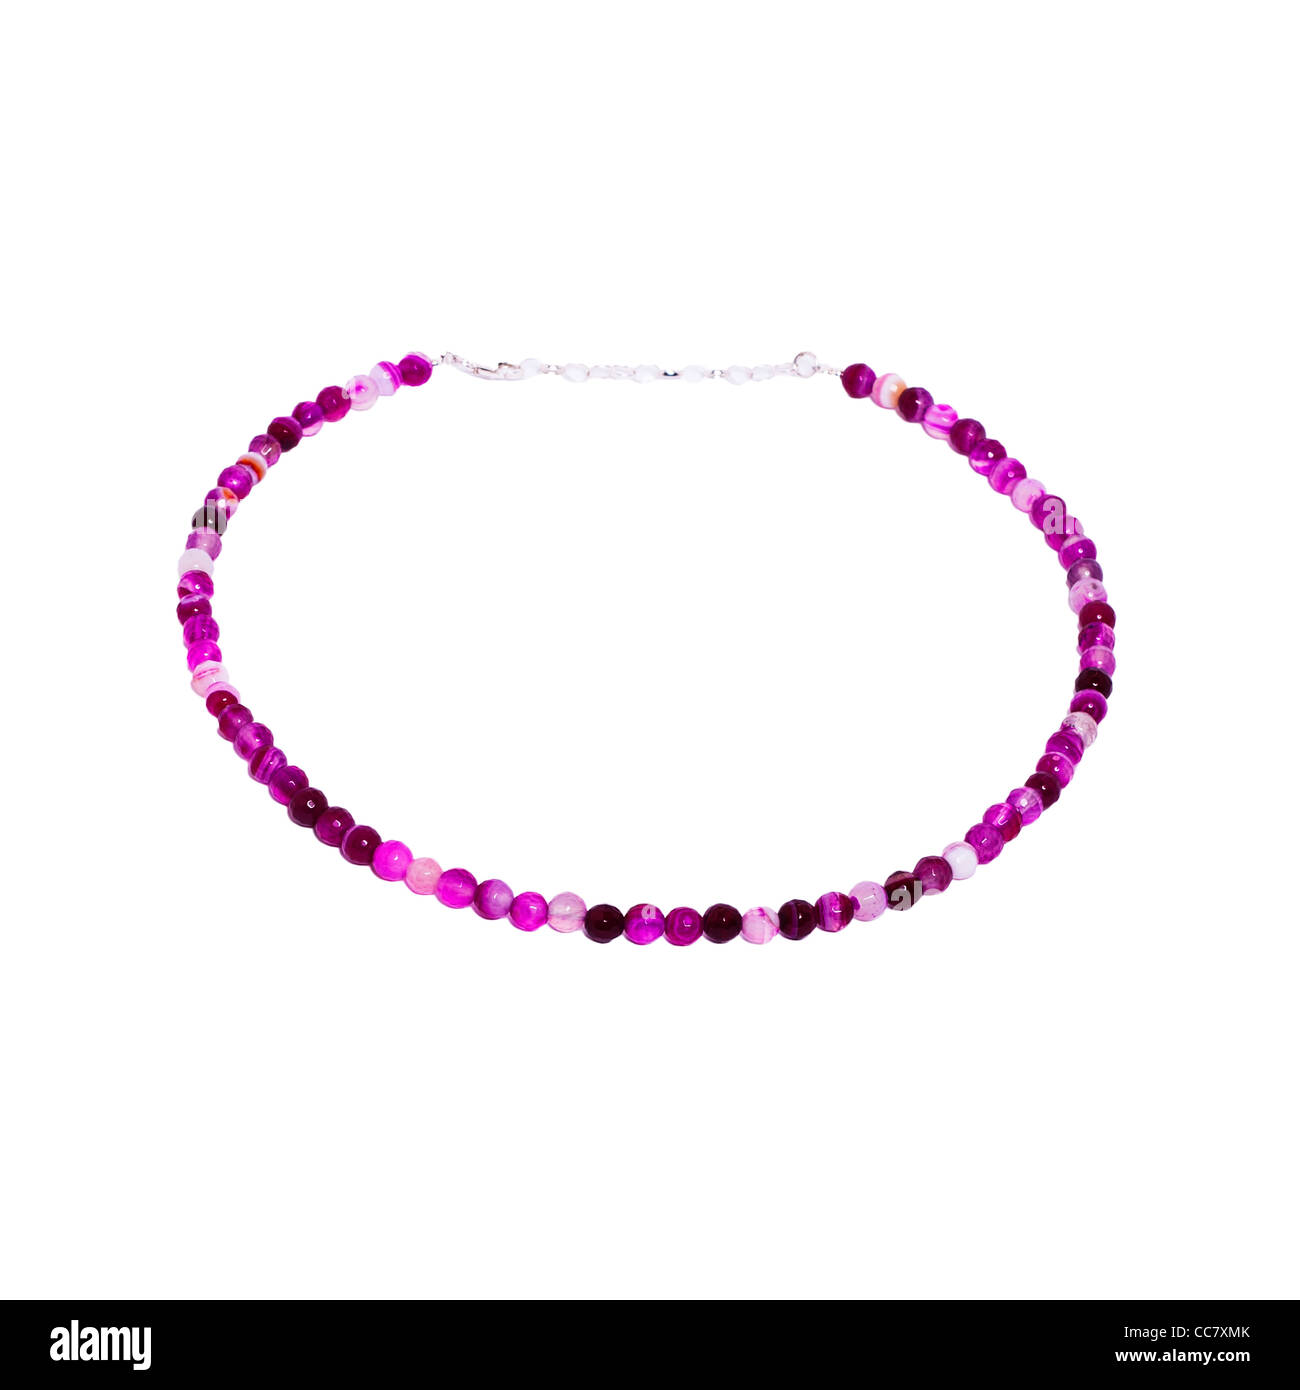 A bead necklace on a white background - Stock Image